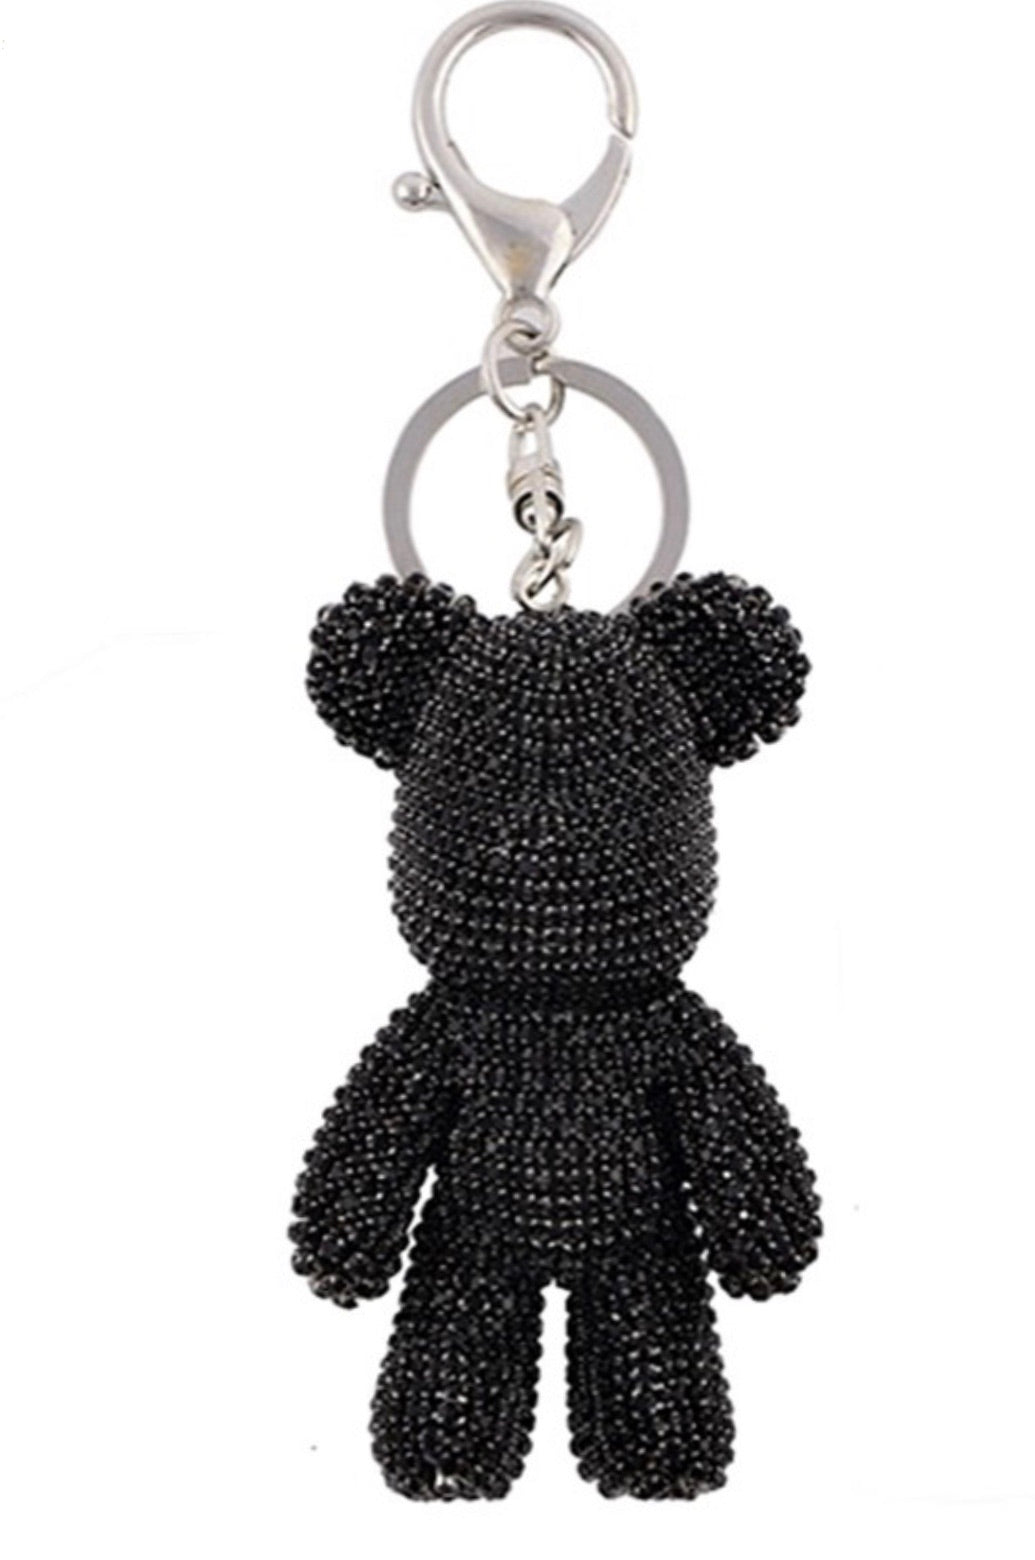 Black Crystal Teddy Keychain